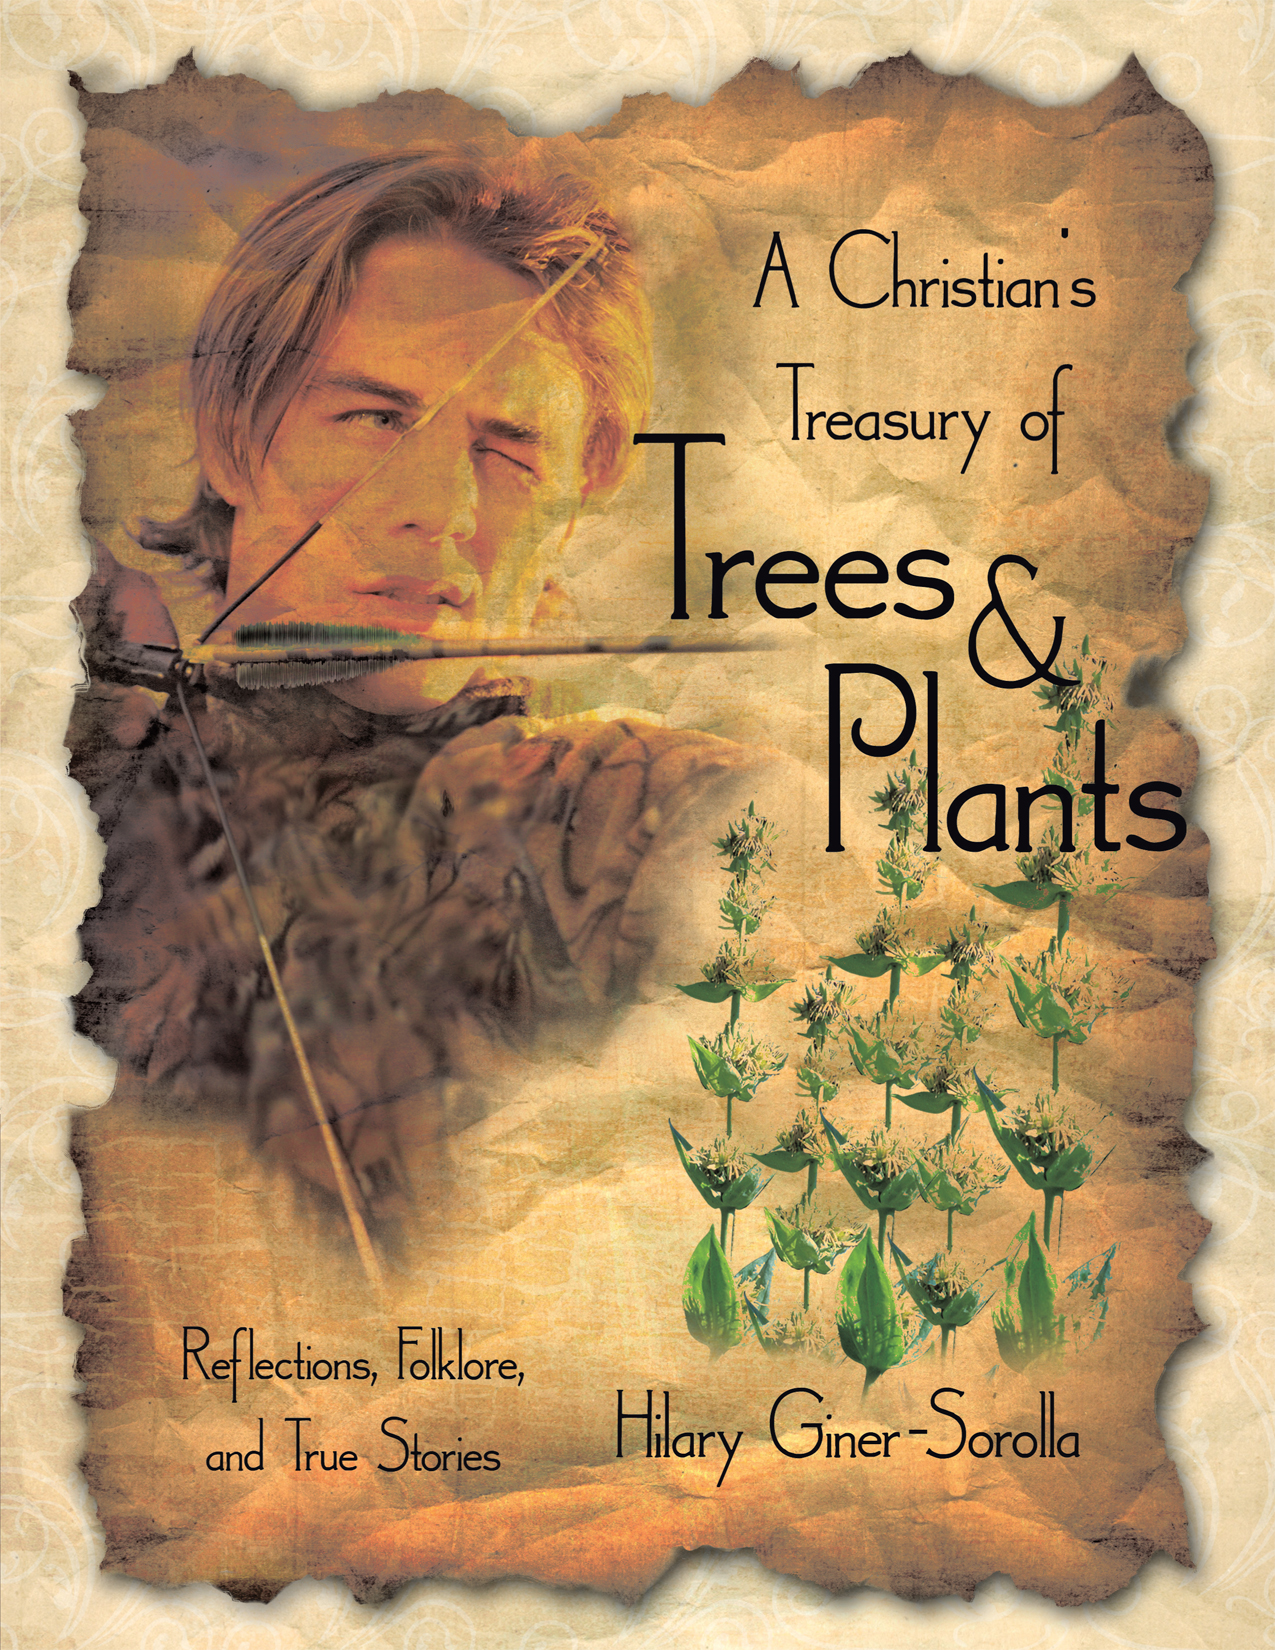 A Christian's Treasury of Trees & Plants By: Hilary Giner-Sorolla